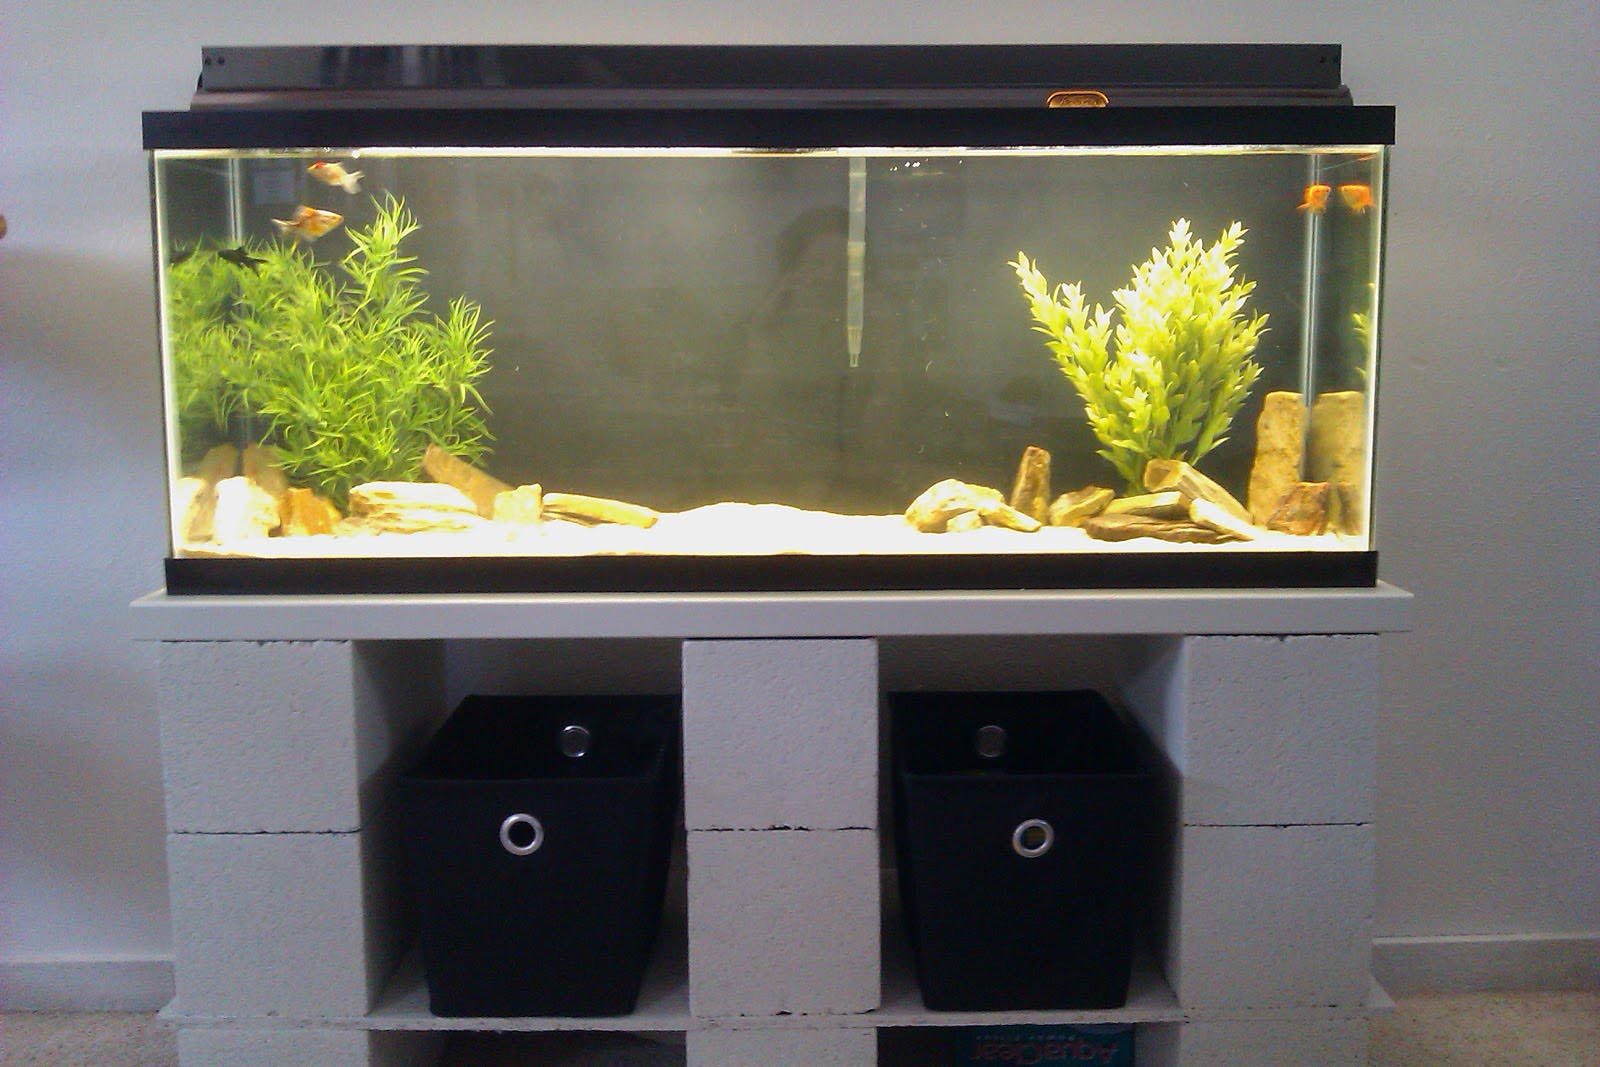 Fish aquarium stands 55 gallon aquarium design ideas for 55 gallon fish tank stand